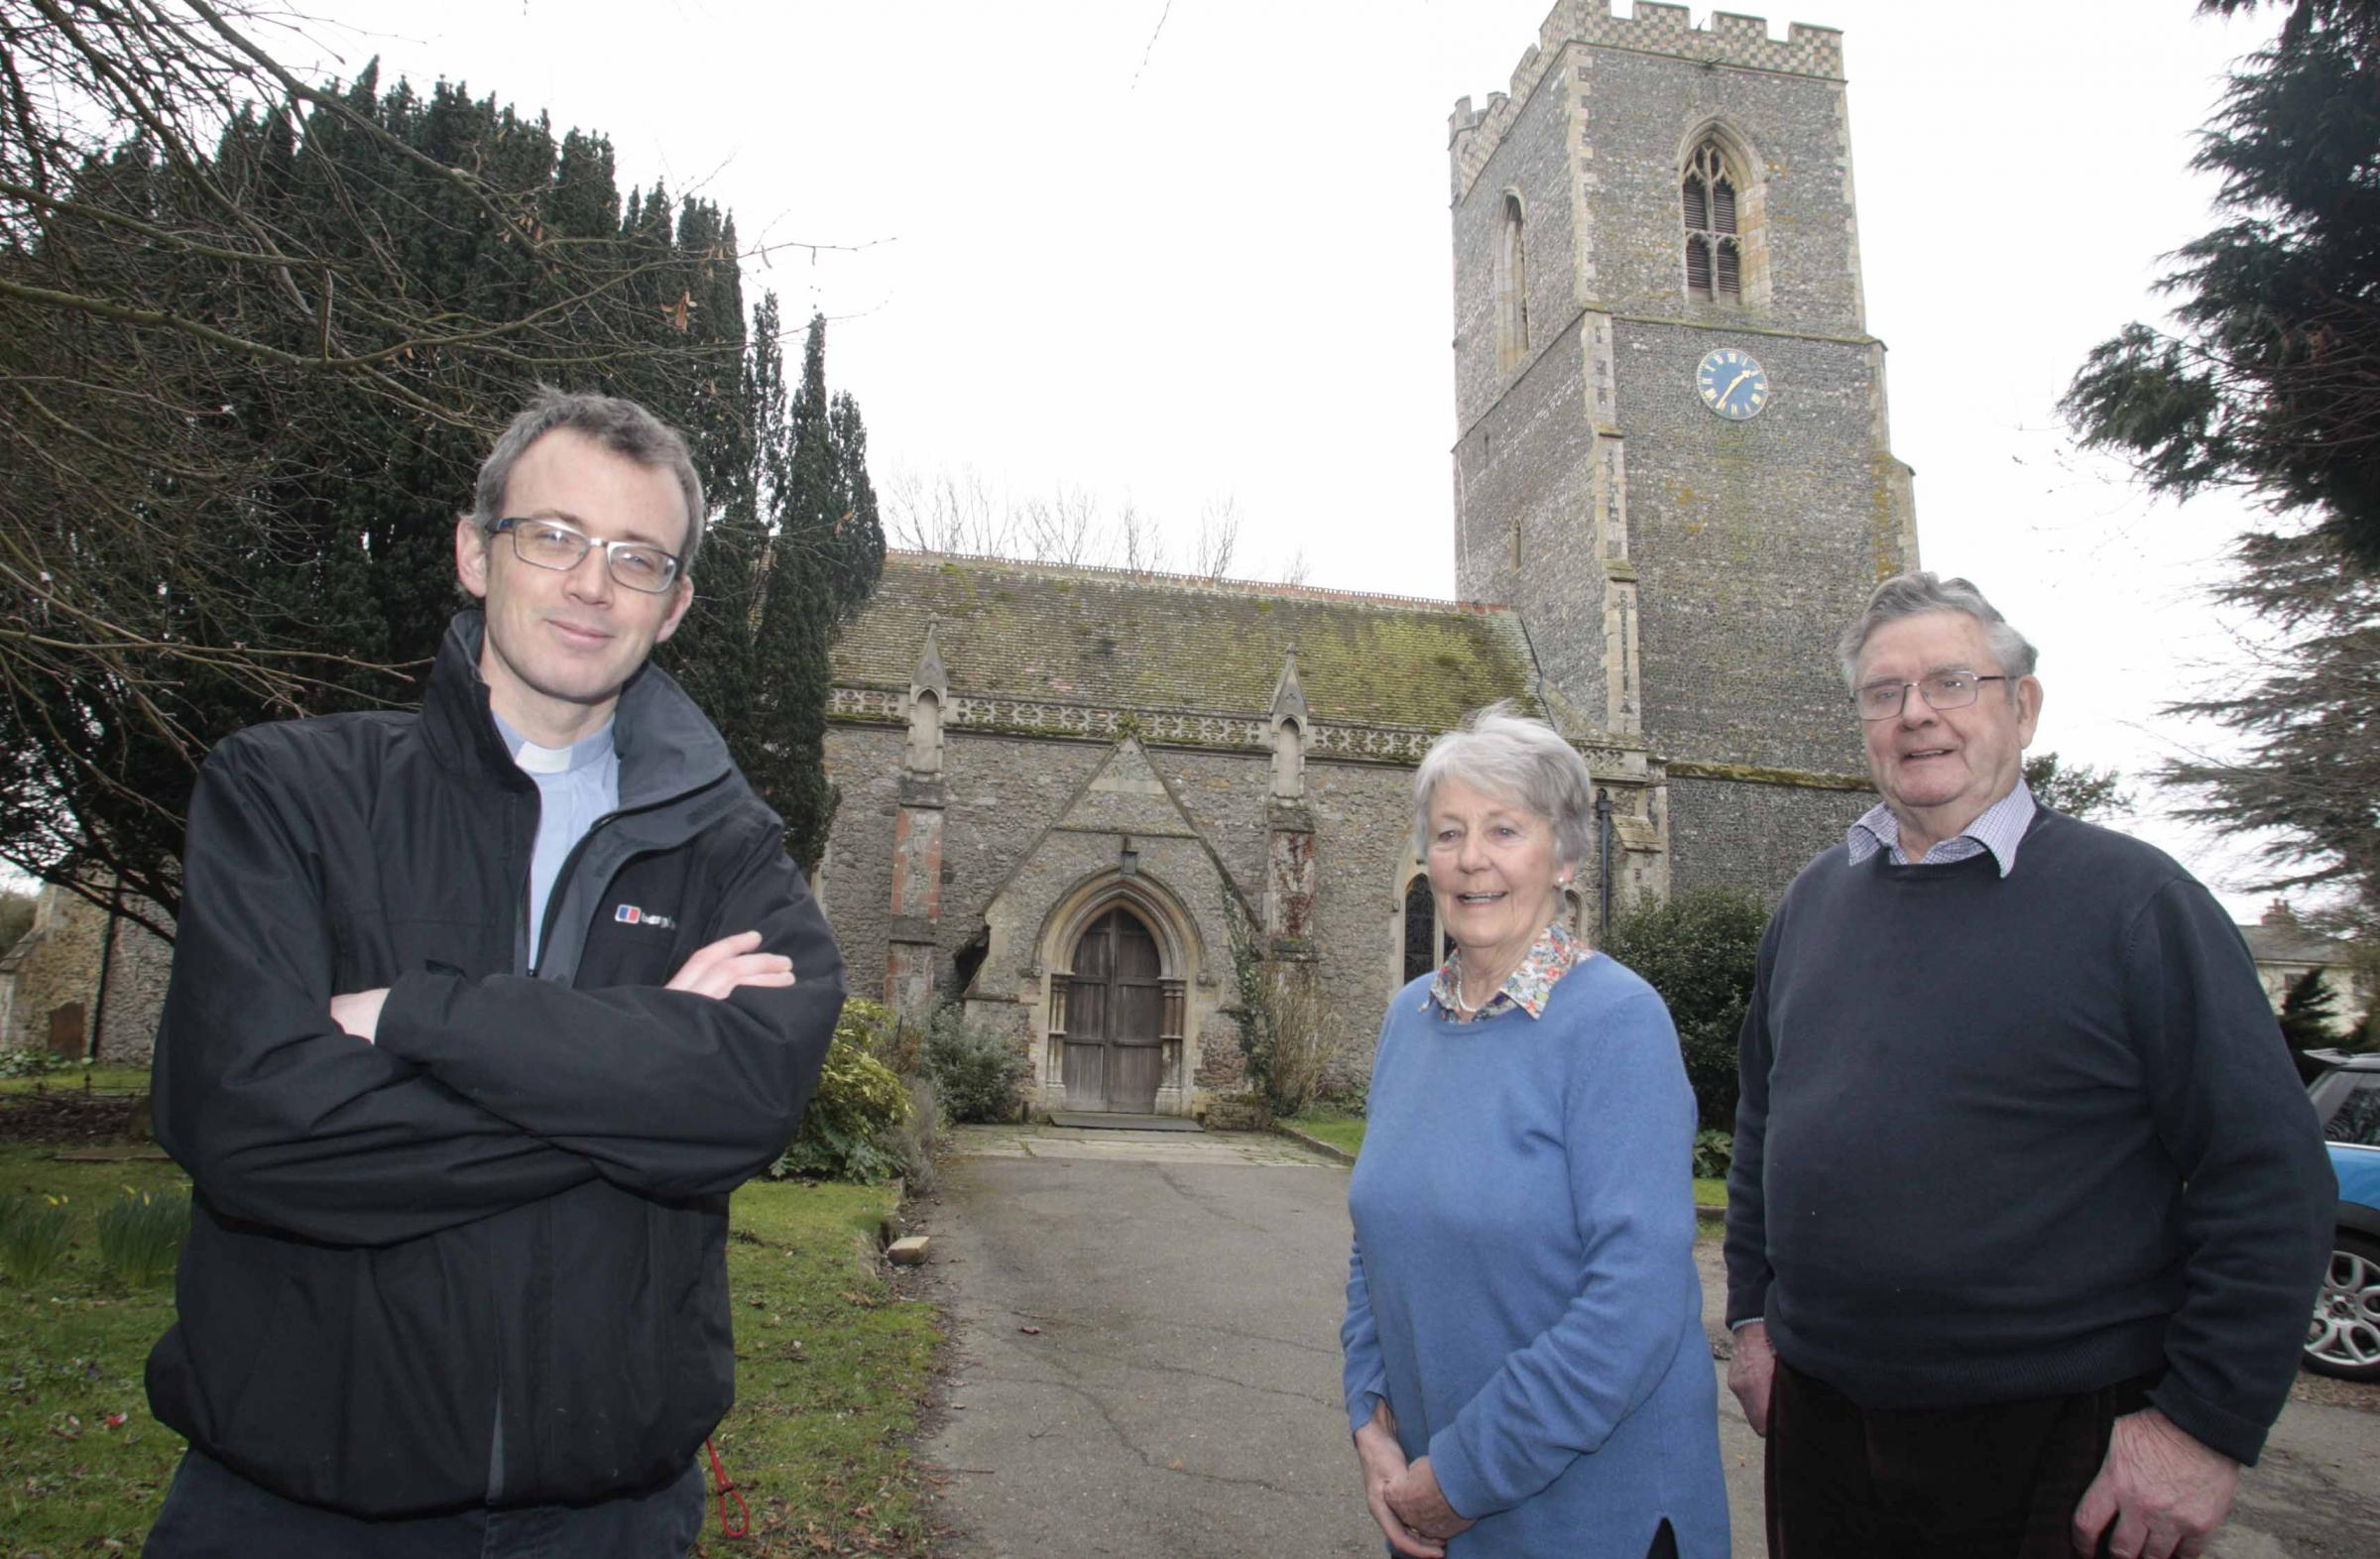 RESTORATION APPEAL: The Rev Mark Holdaway with churchwardens Myra Dansie and John Beale outside St Michael's